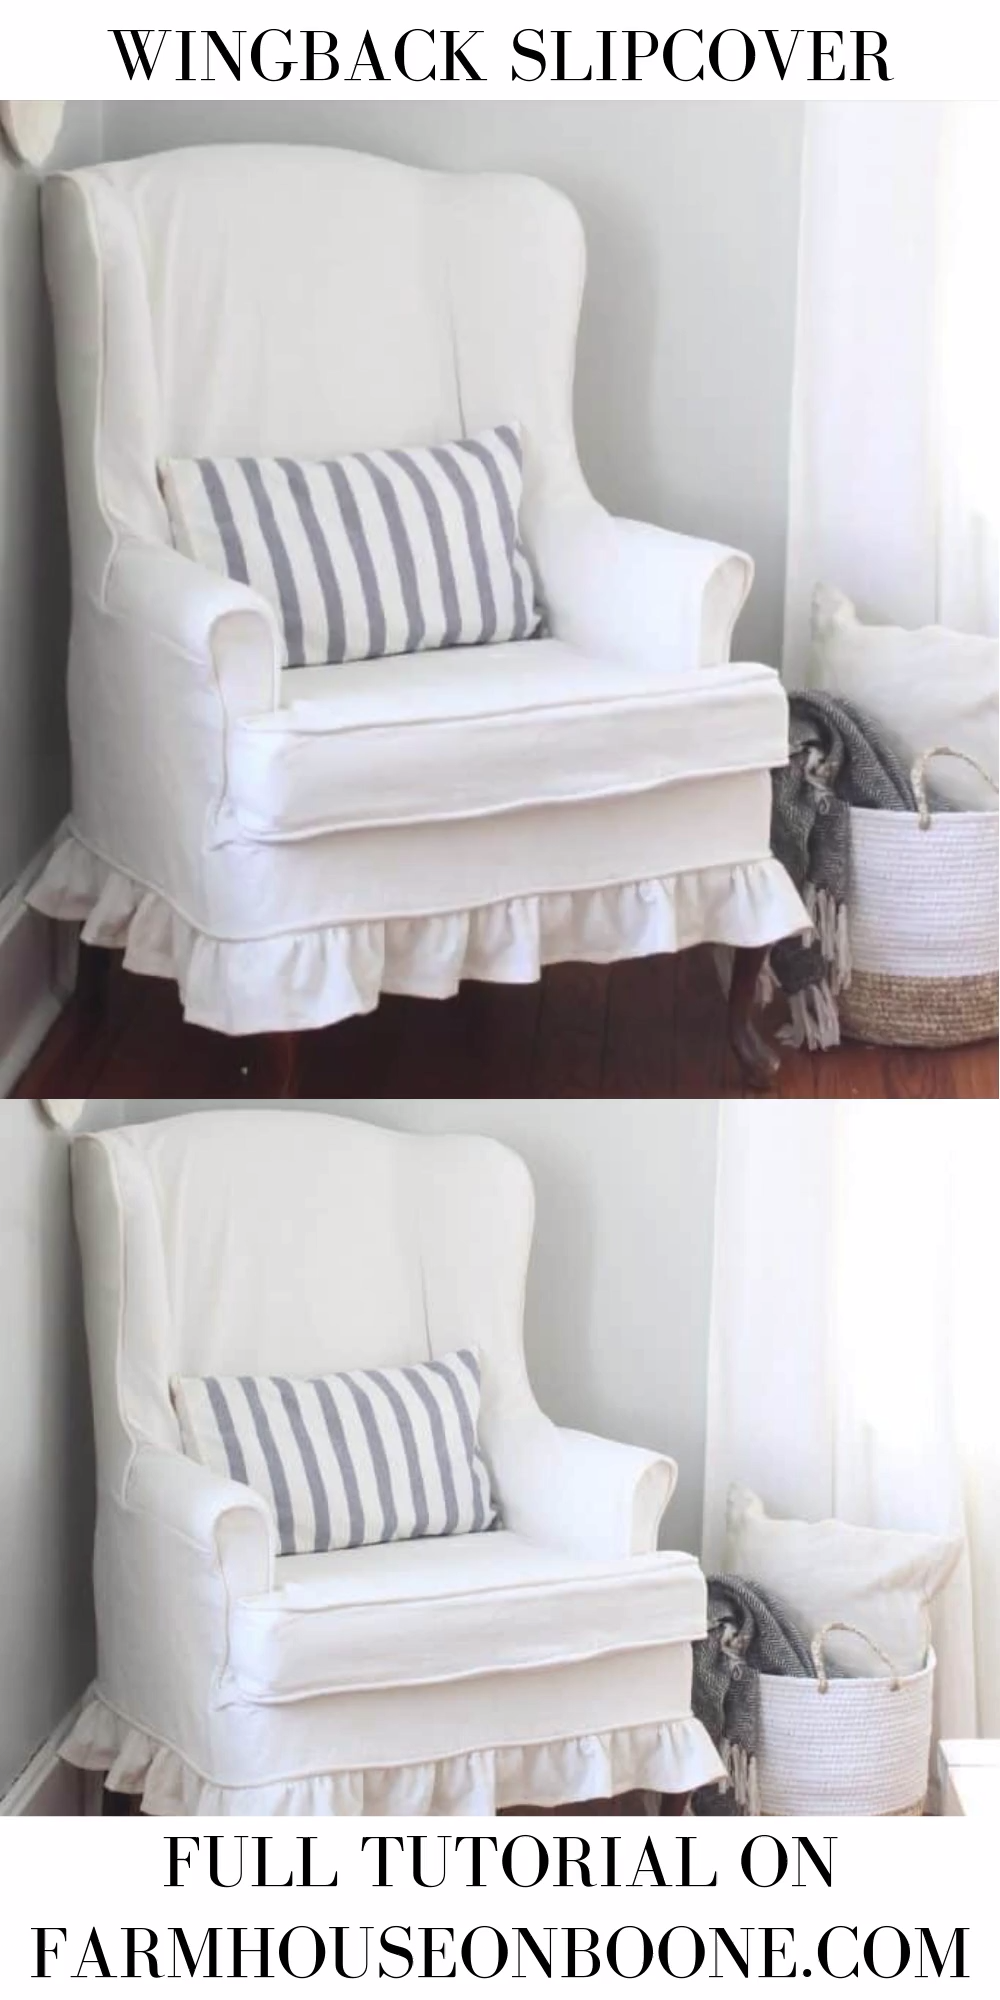 Learn how to slipcover a wingback chair with painter's drop cloth. I have included a video documenting the whole slipcovering process, lots of instructions and my tips for an excellent fit.